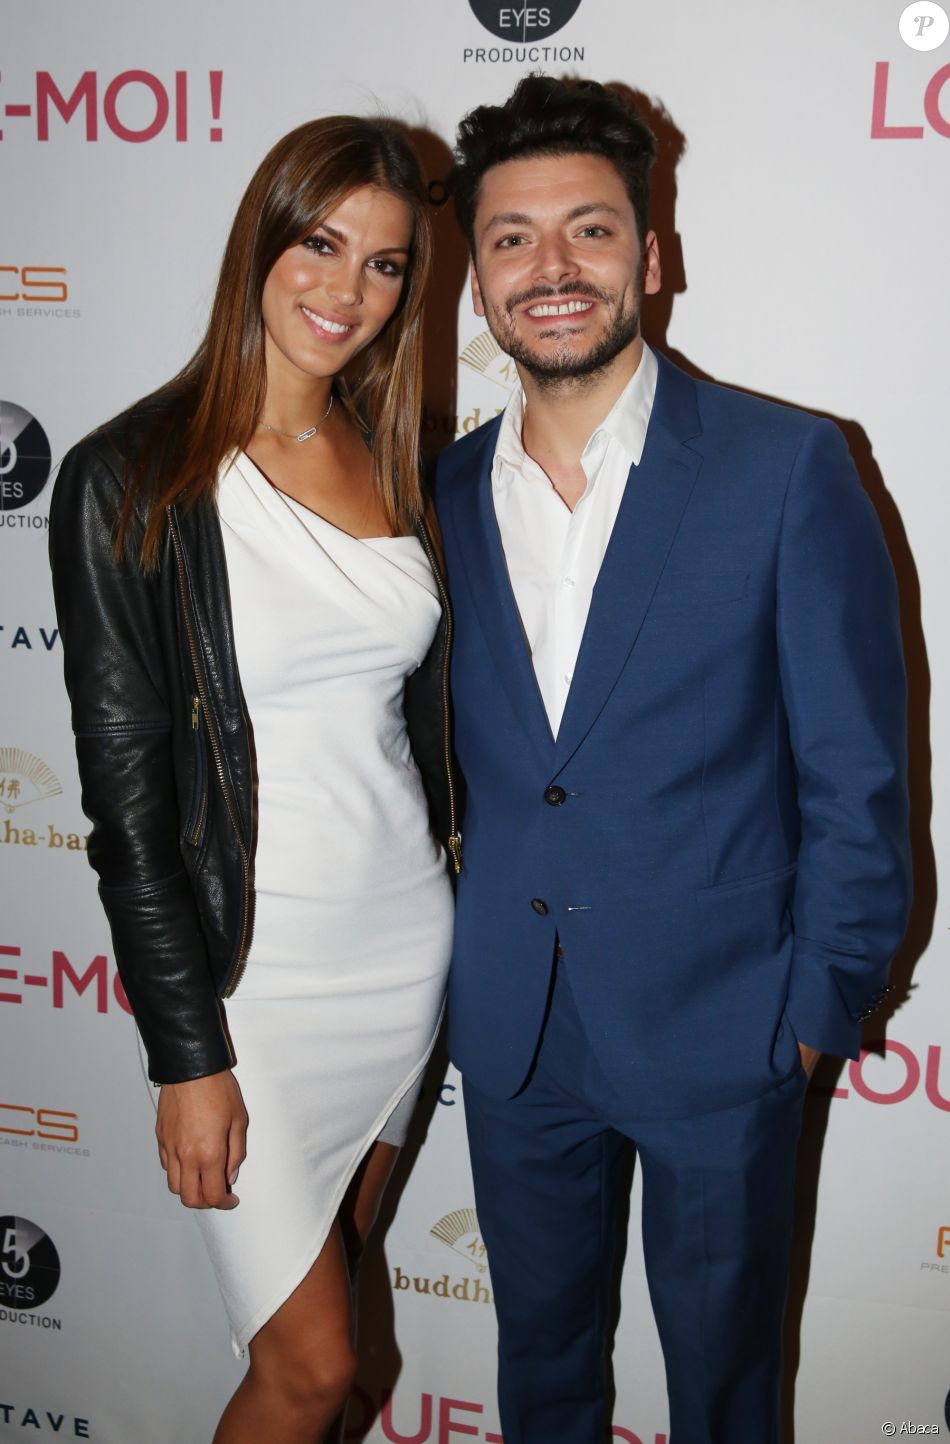 Iris Mittenaere et Kev Adams lors de l'After Party de 'Loue-Moi !', au Buddha Bar à Paris, France, le 3 Juillet 2017.